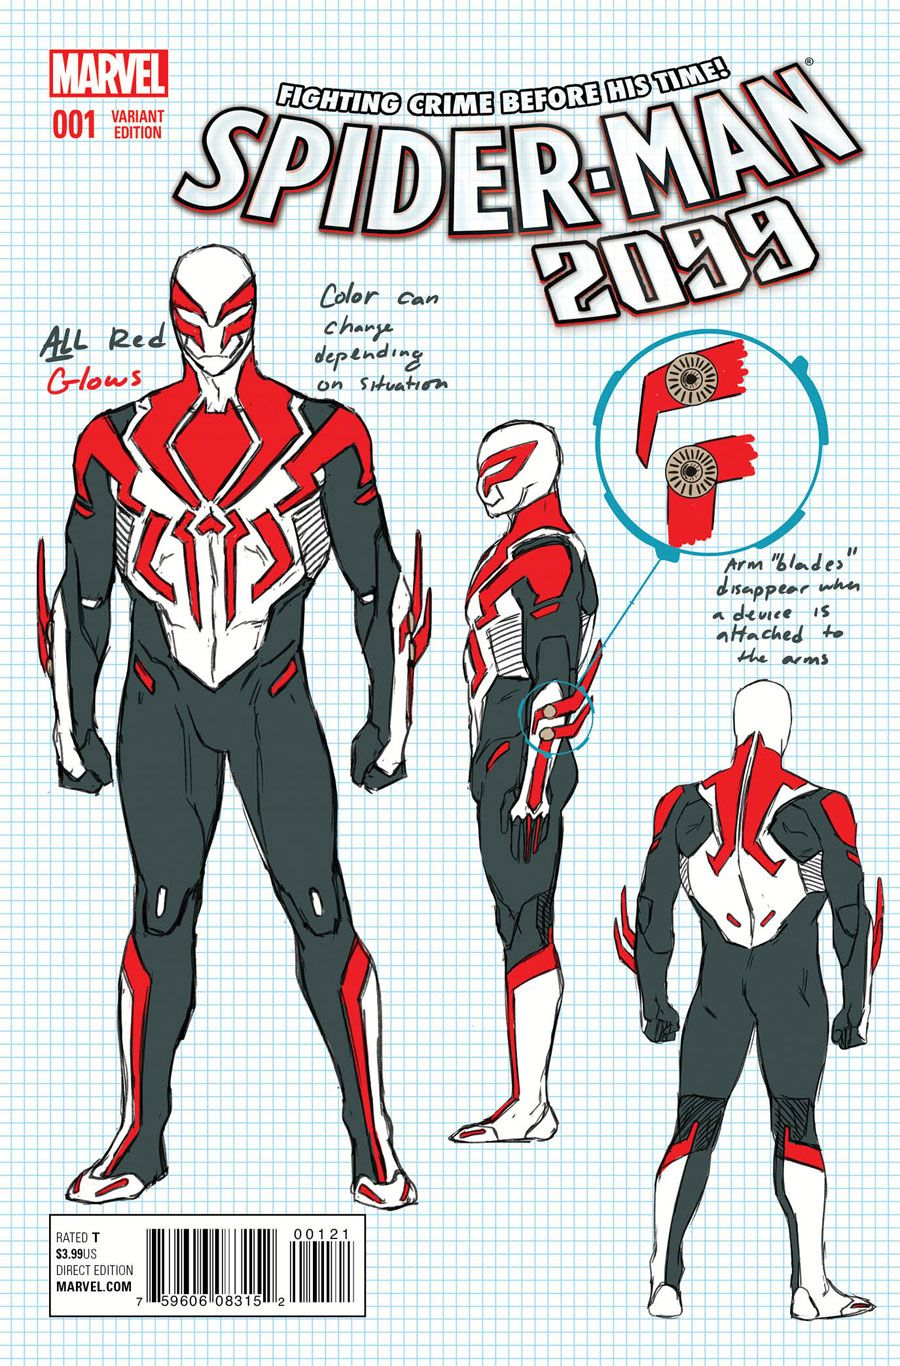 Preview Spider Man 2099 1 Page 1 Of 5 Spiderman Spiderman Comic Marvel Spiderman